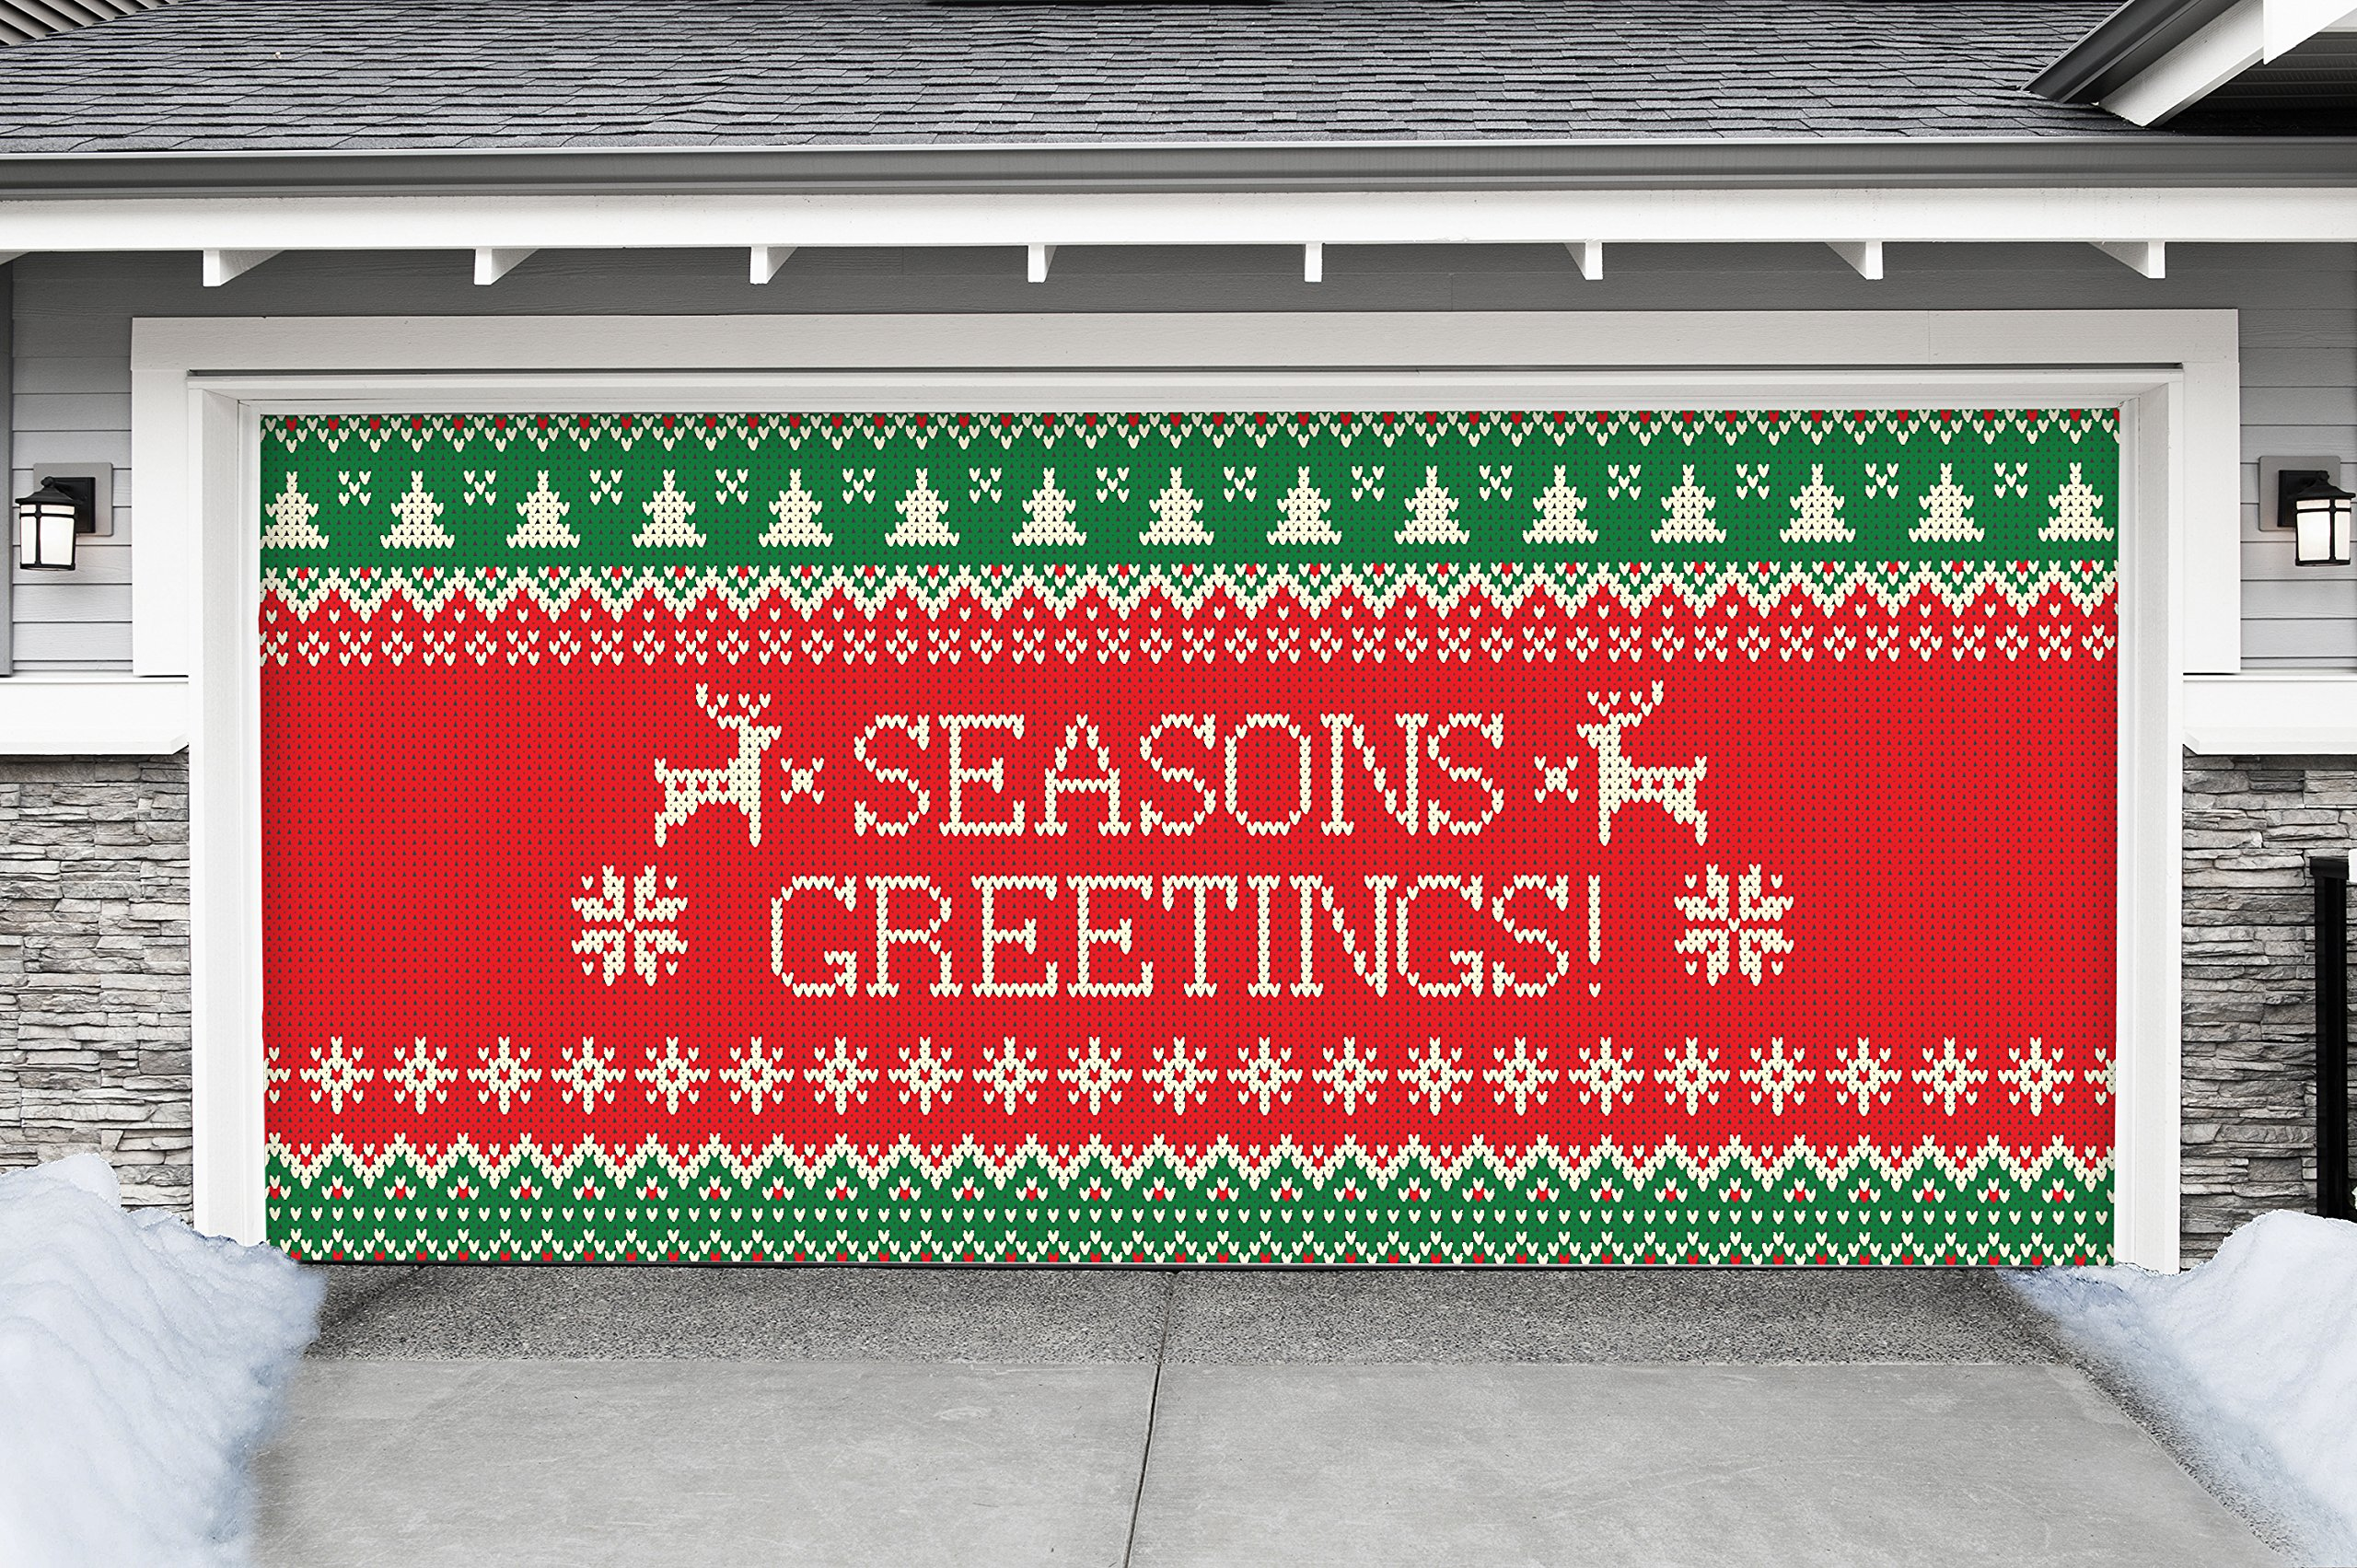 Outdoor Christmas Holiday Garage Door Banner Cover Mural Décoration - Ugly Christmas Sweater Seasons Greetings - Outdoor Christmas Holiday Garage Door Banner Décor Sign 7'x16'